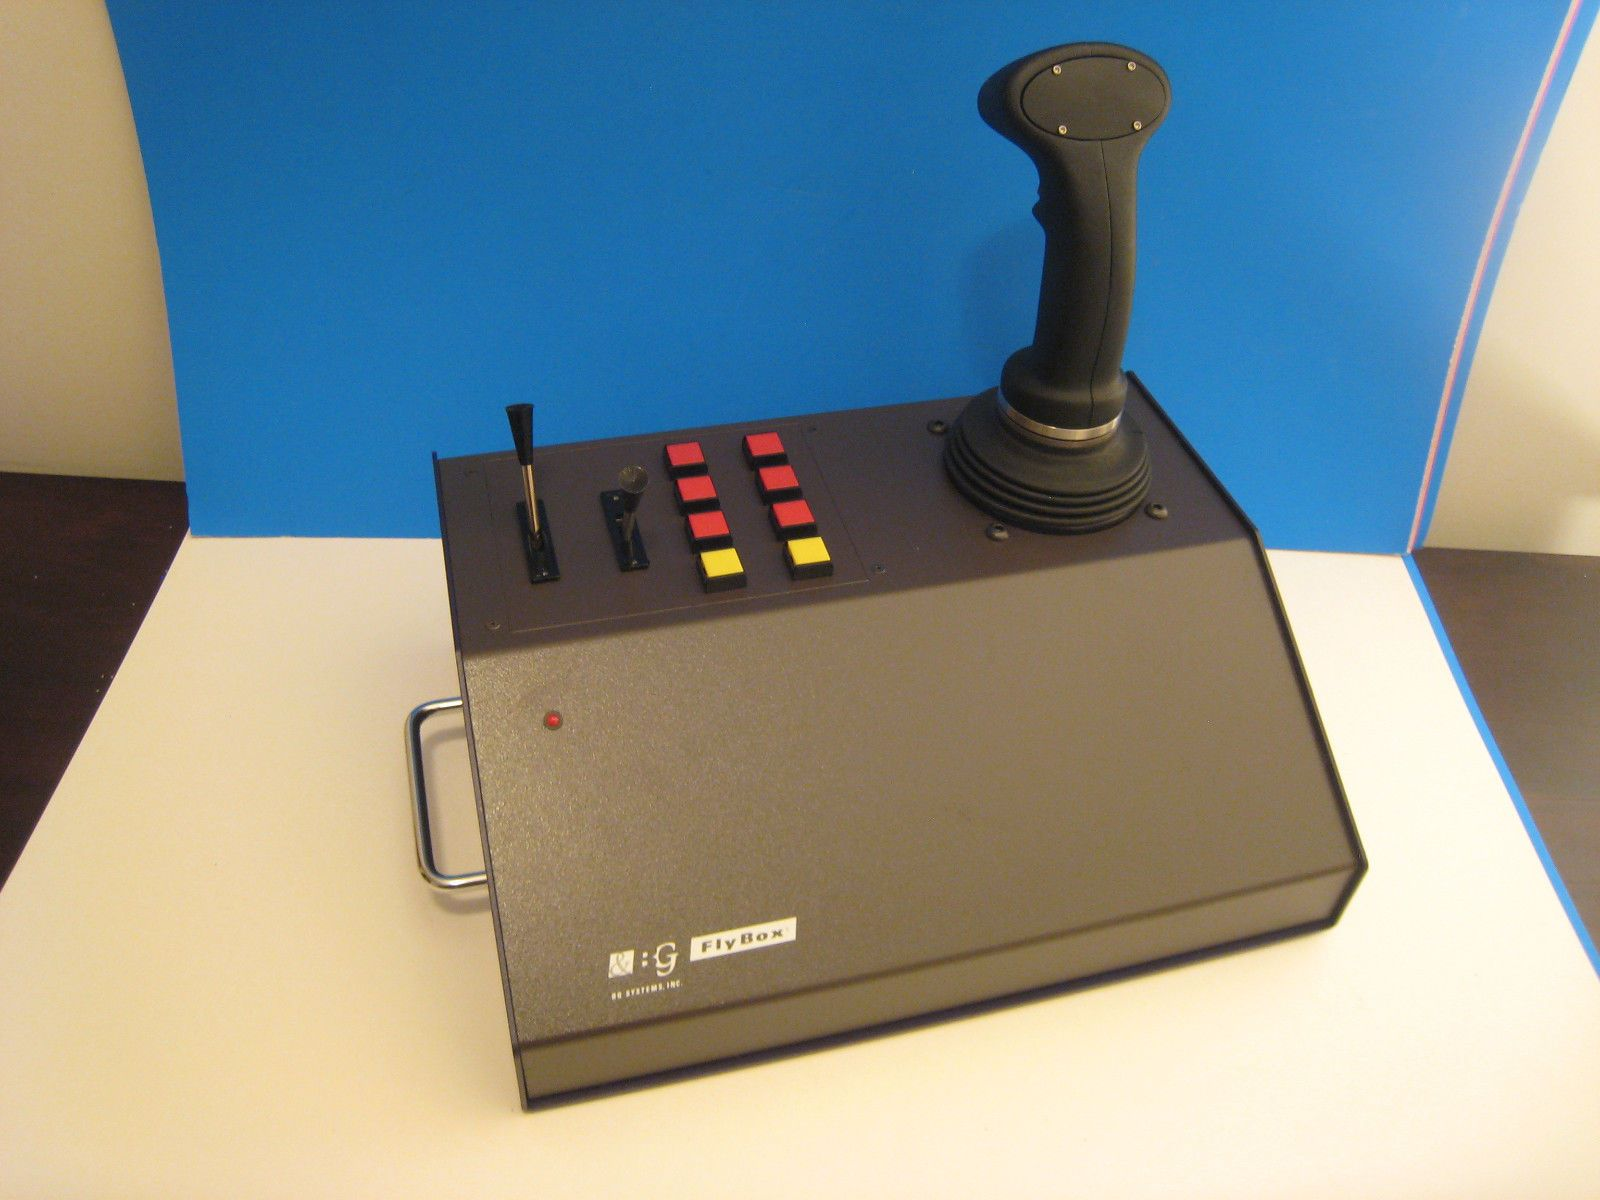 Details About Bg Systems Flybox Lv824 Joystick Mouse